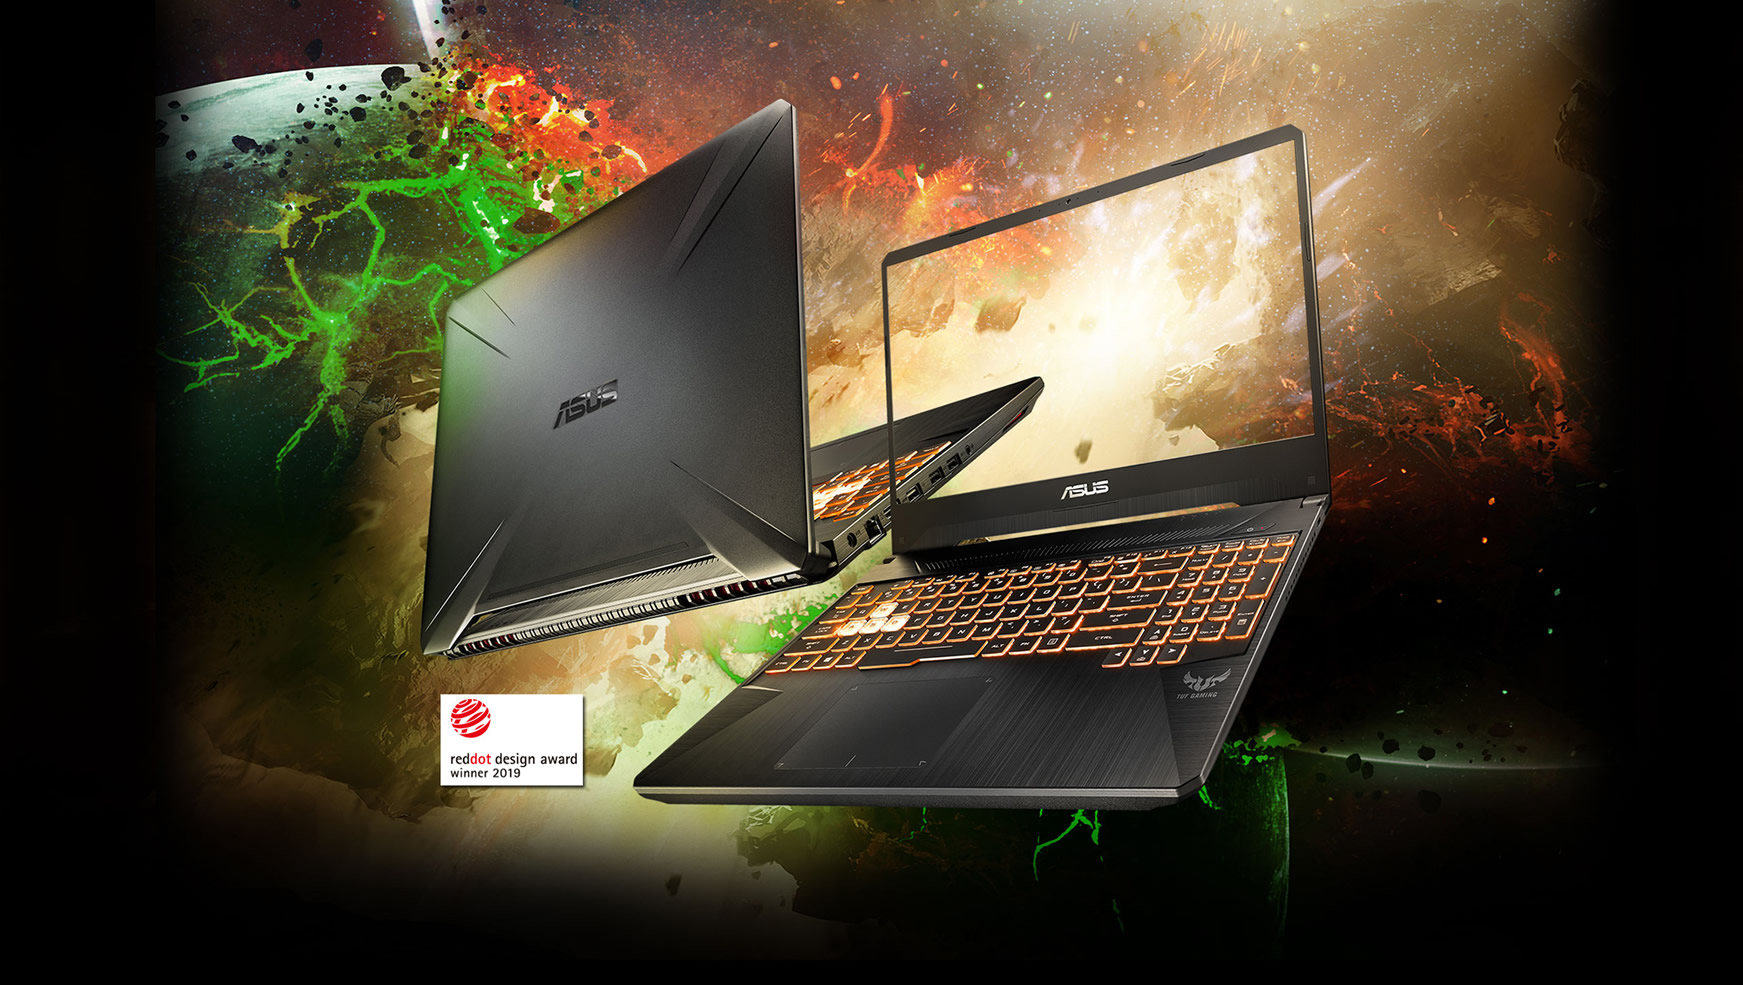 ASUS TUF Gaming FX505DD/DT/DU | Laptops | ASUS Malaysia